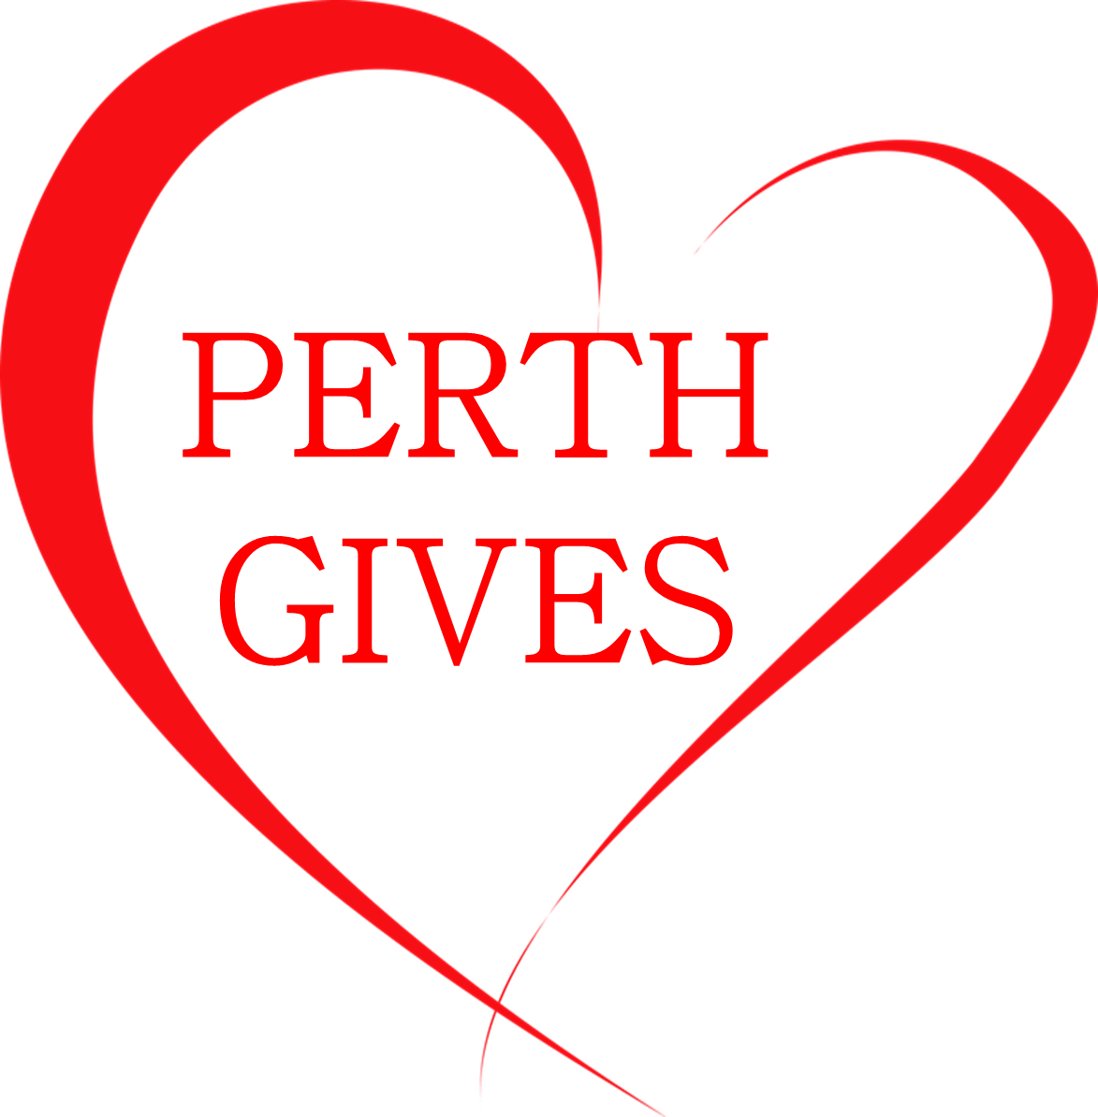 PERTH GIVES